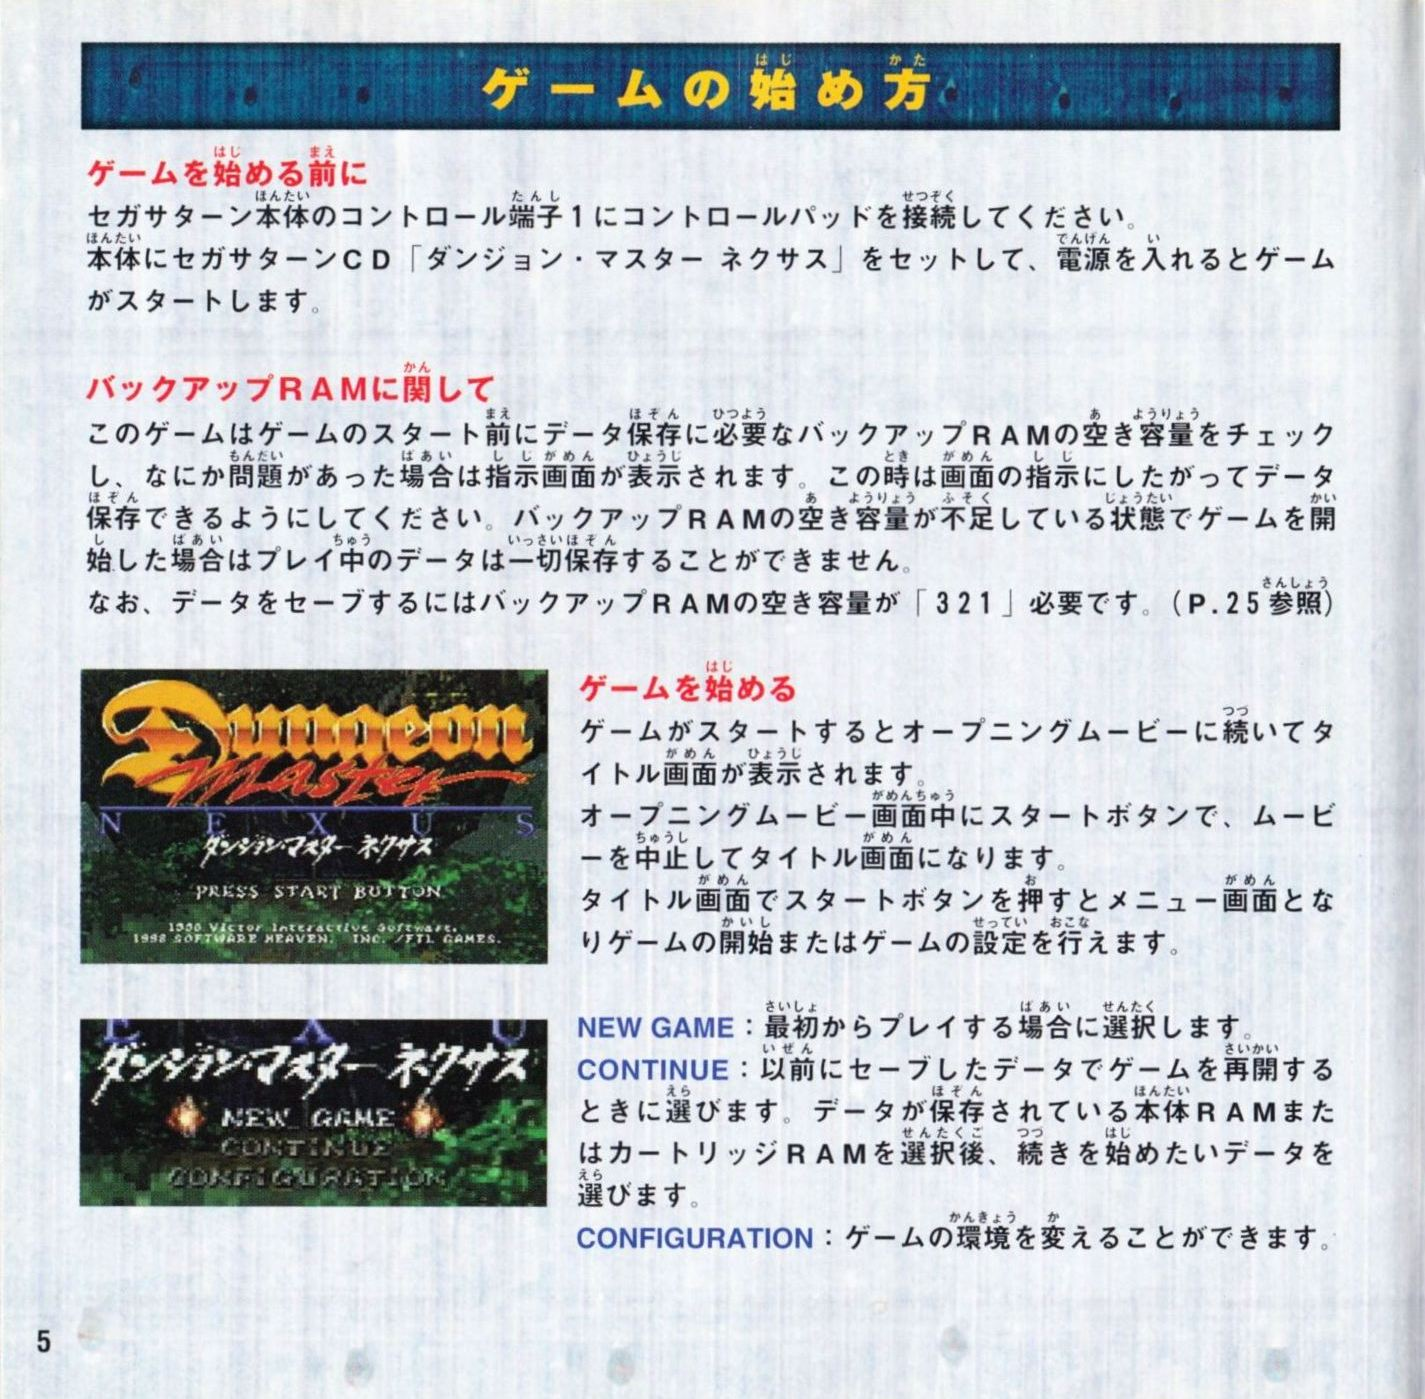 Game - Dungeon Master Nexus - JP - Sega Saturn - Booklet - Page 006 - Scan